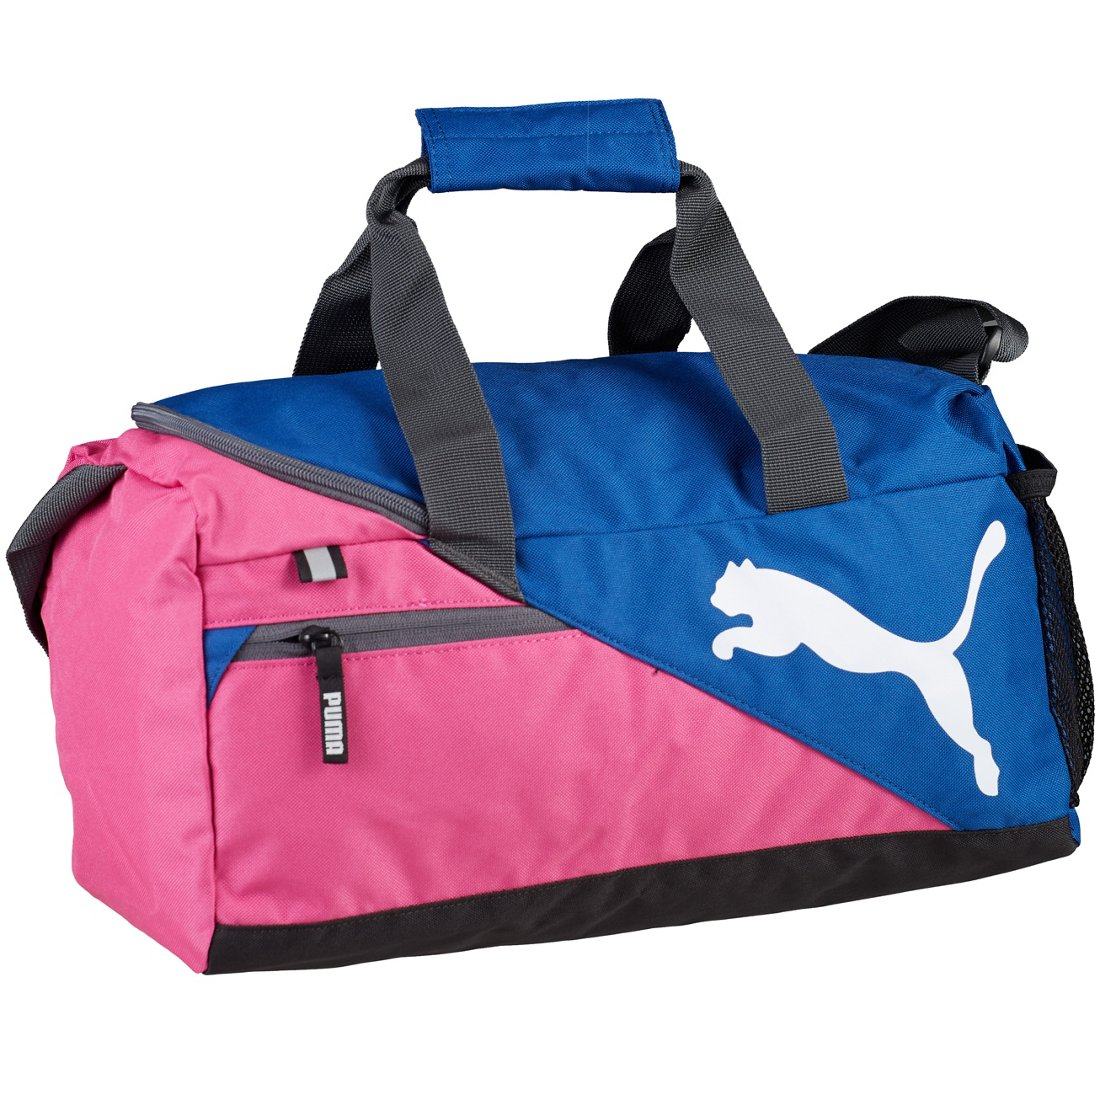 Puma Fundamentals Sports Bag XS Sporttasche 40 cm - rose violet-true blue